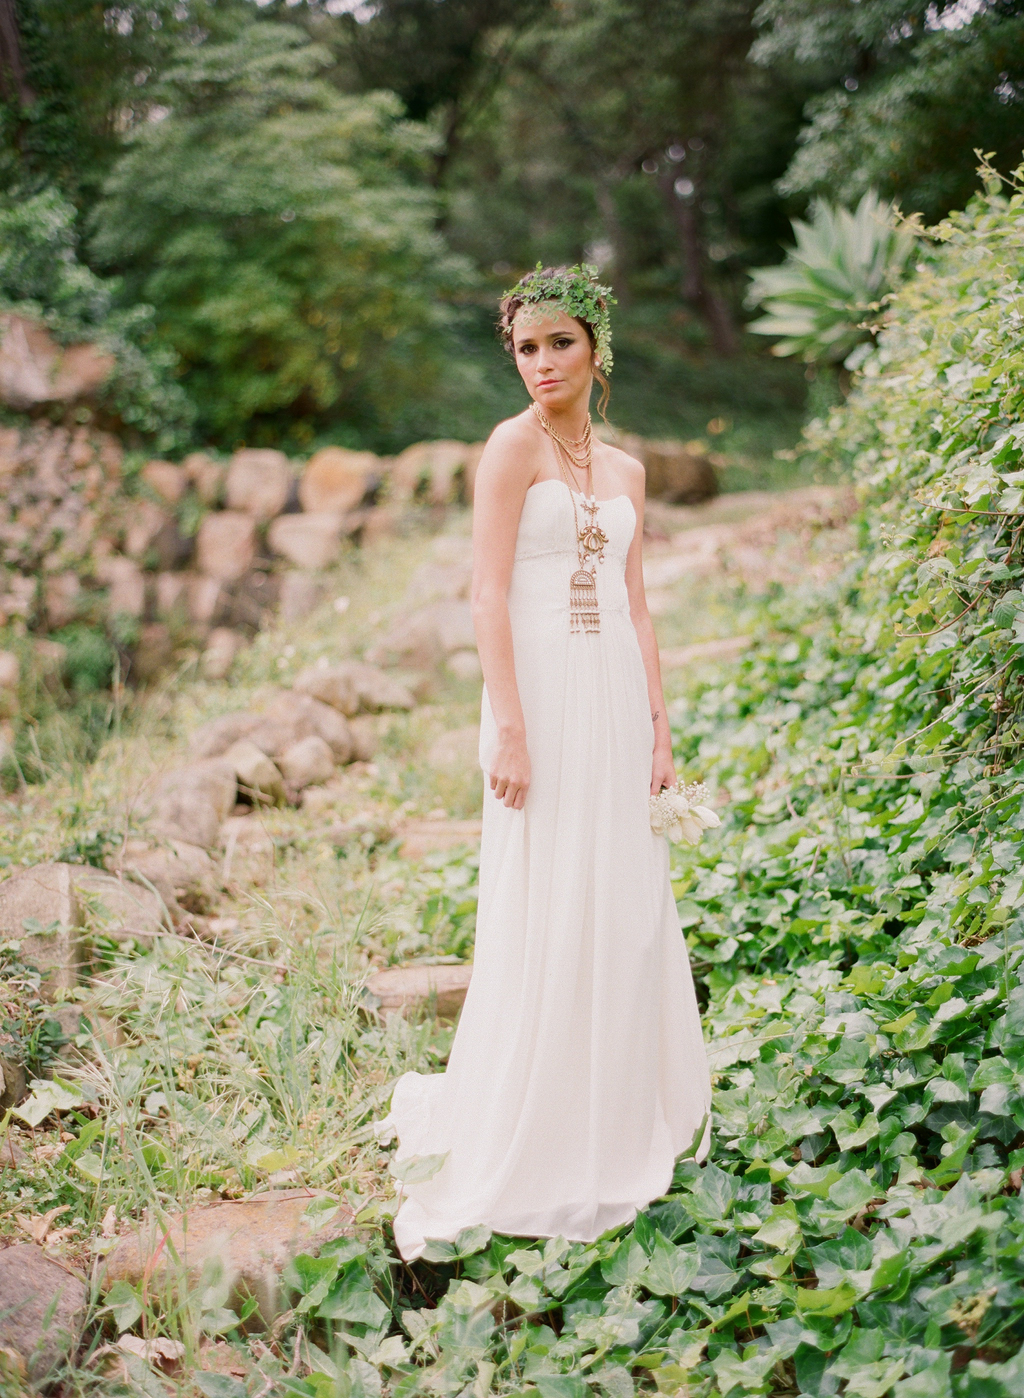 Styled-wedding-santa-barbara-chic-beaux-arts-phtographie-italian-bohemian-wedding-bride-wedding-dress-002.full